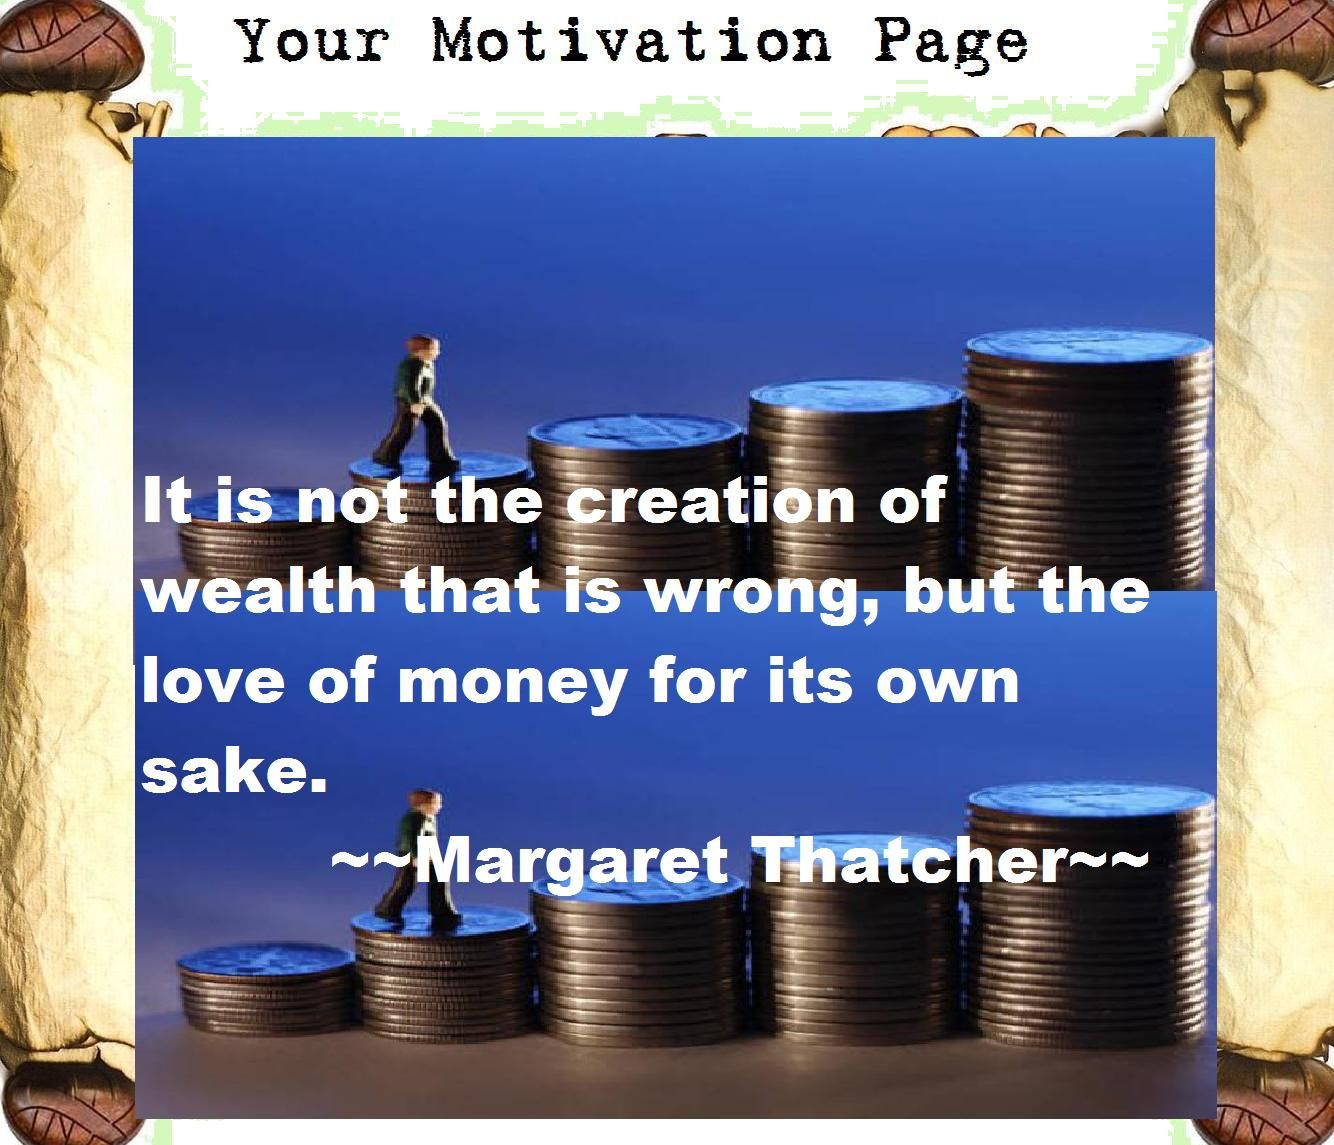 Money Quotes Quotes On Money Quotes About Money Saving Money Quotes Funny Money Quote Money Quotes Inspirational Quotes For Kids Work Quotes Inspirational